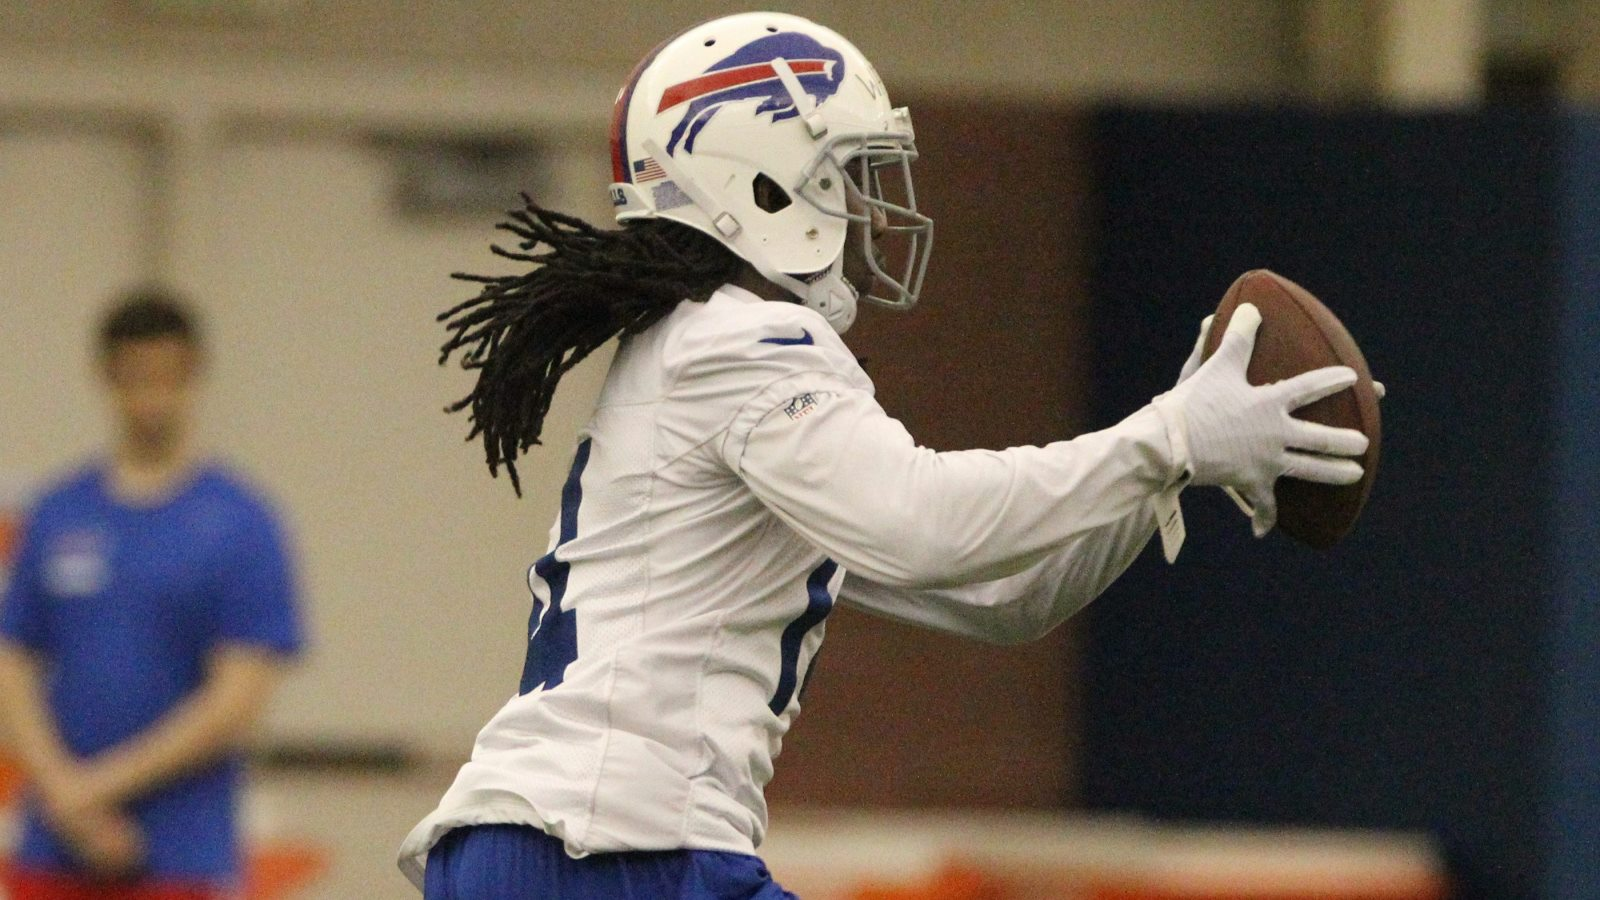 The Bills traded up to select Sammy Watkins with the fourth overall pick. (James P. McCoy/Buffalo News)